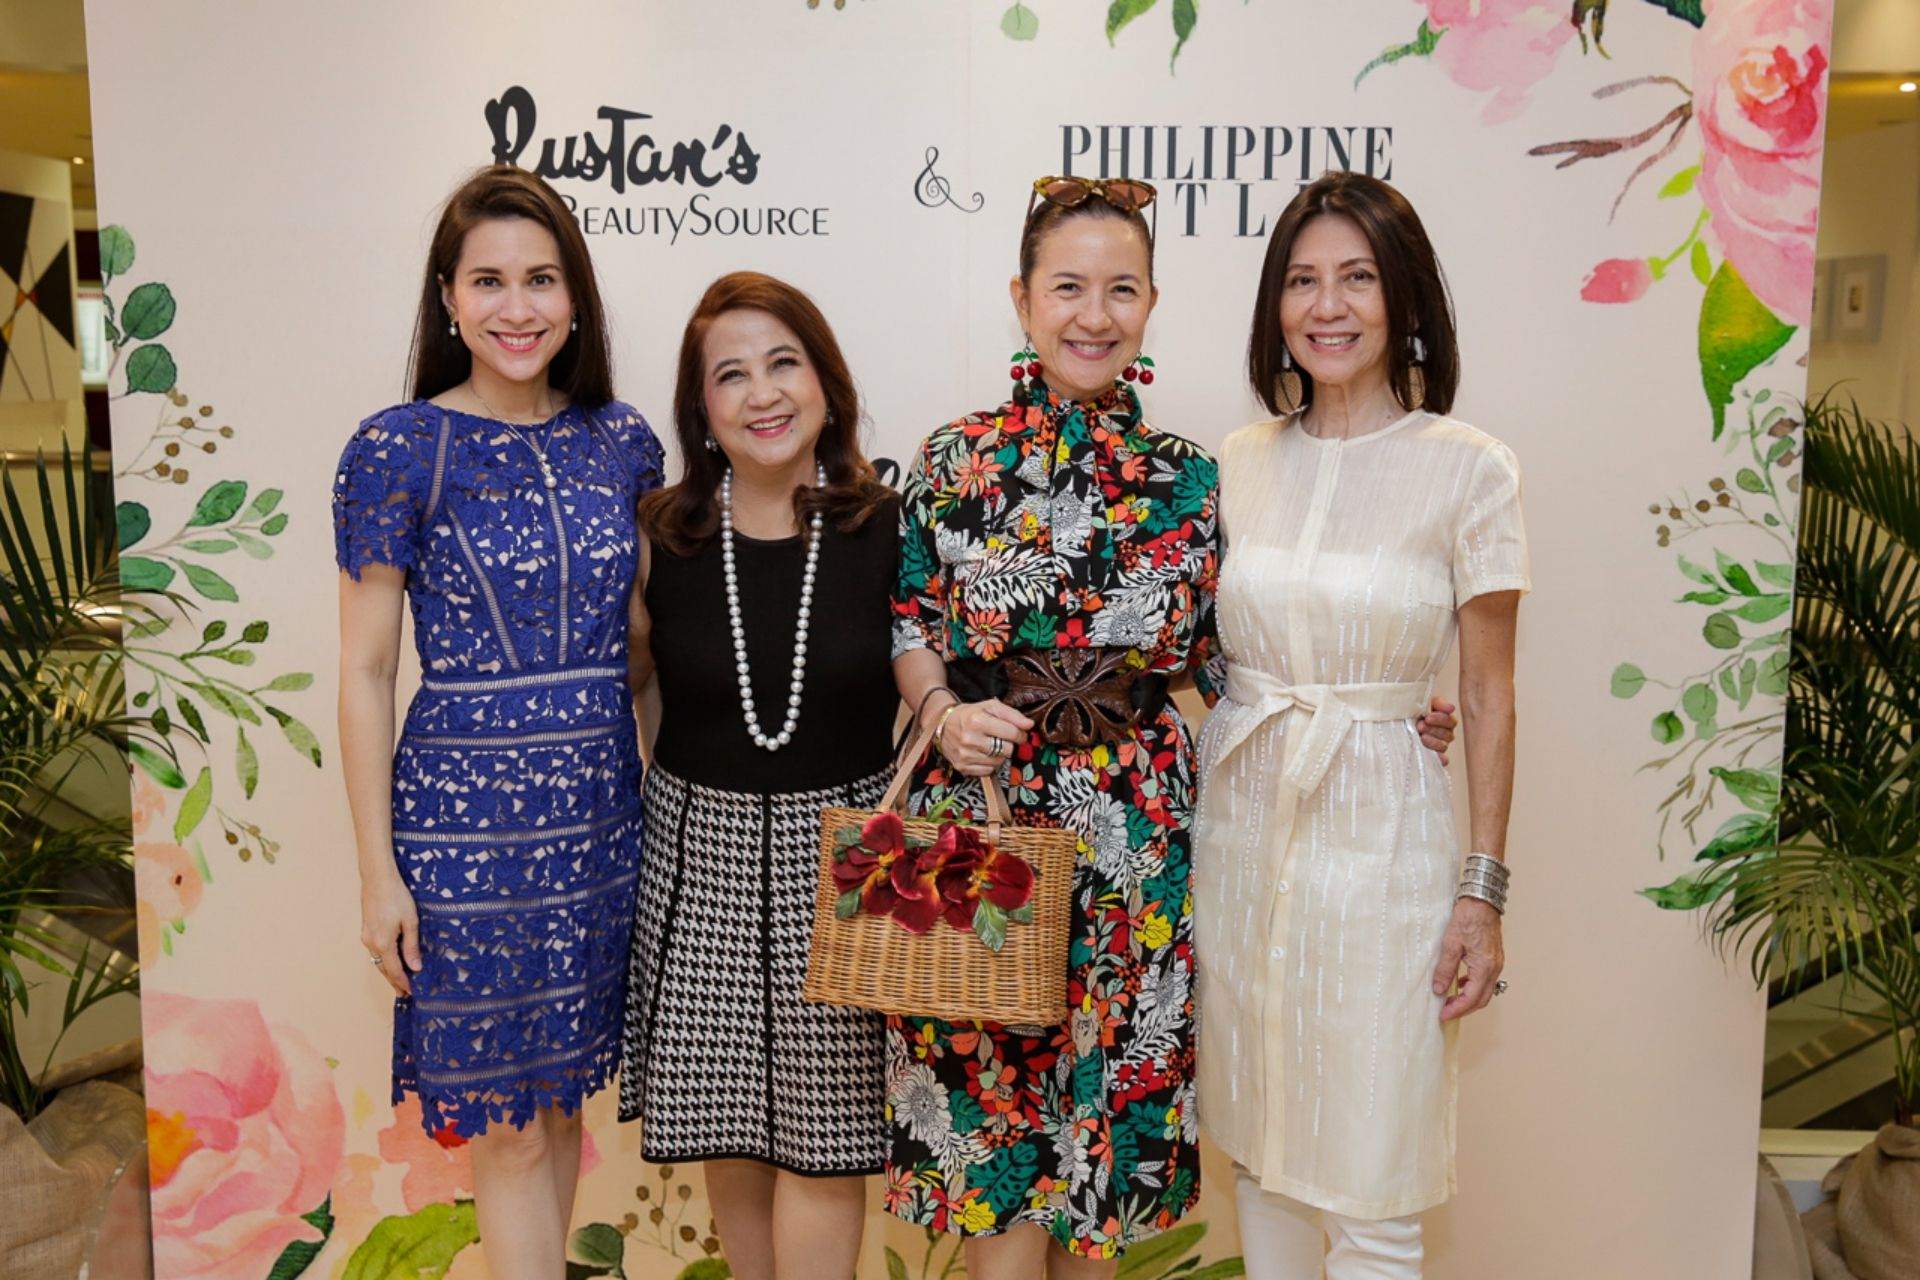 Audrey Zubiri, Dette Tan, Mia Borromeo and Lulu Tan Gan